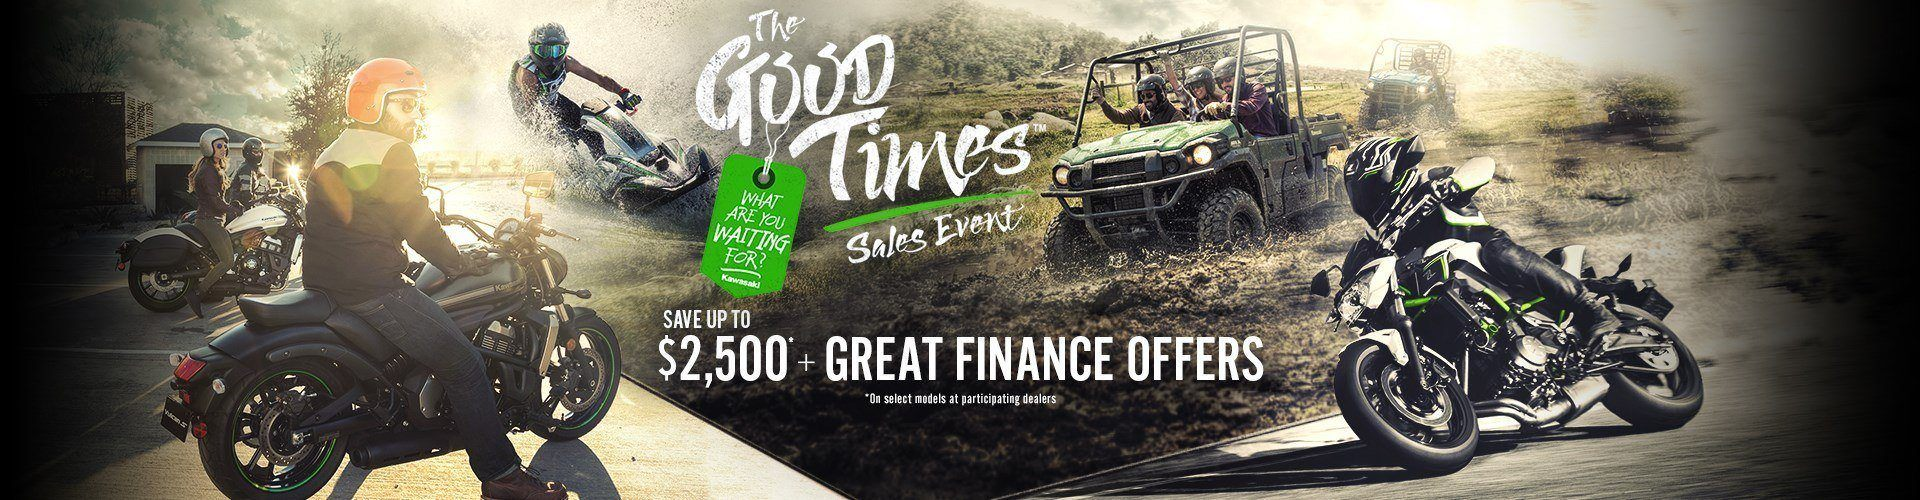 Goodtimes OFFERS 2017